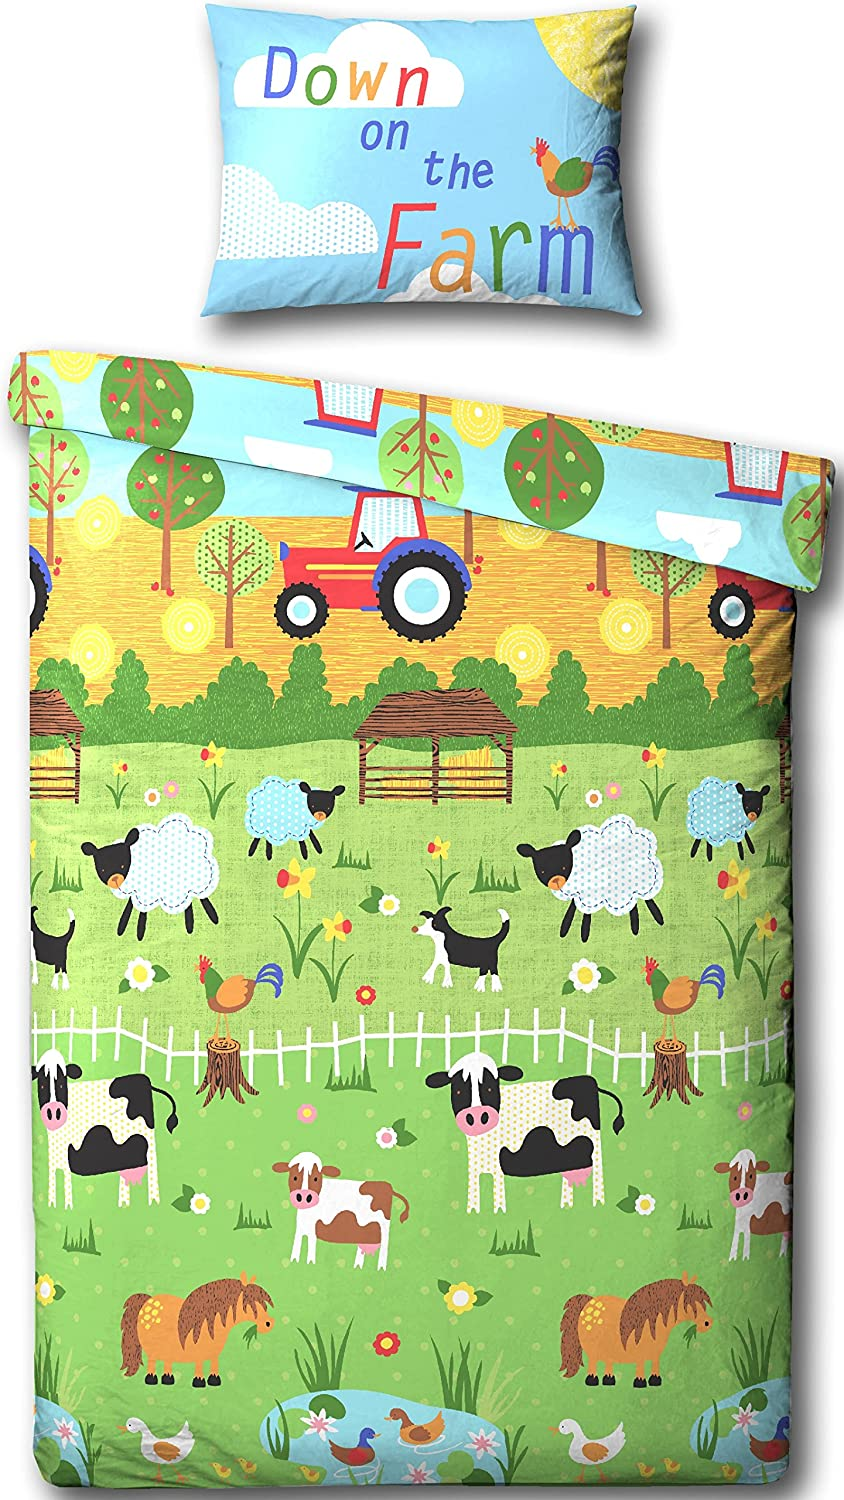 farmyard animals junior bedtoddler bed duvet cover bed set  - farmyard animals junior bedtoddler bed duvet cover bed set  includingmatching pillowcase amazoncouk kitchen  home